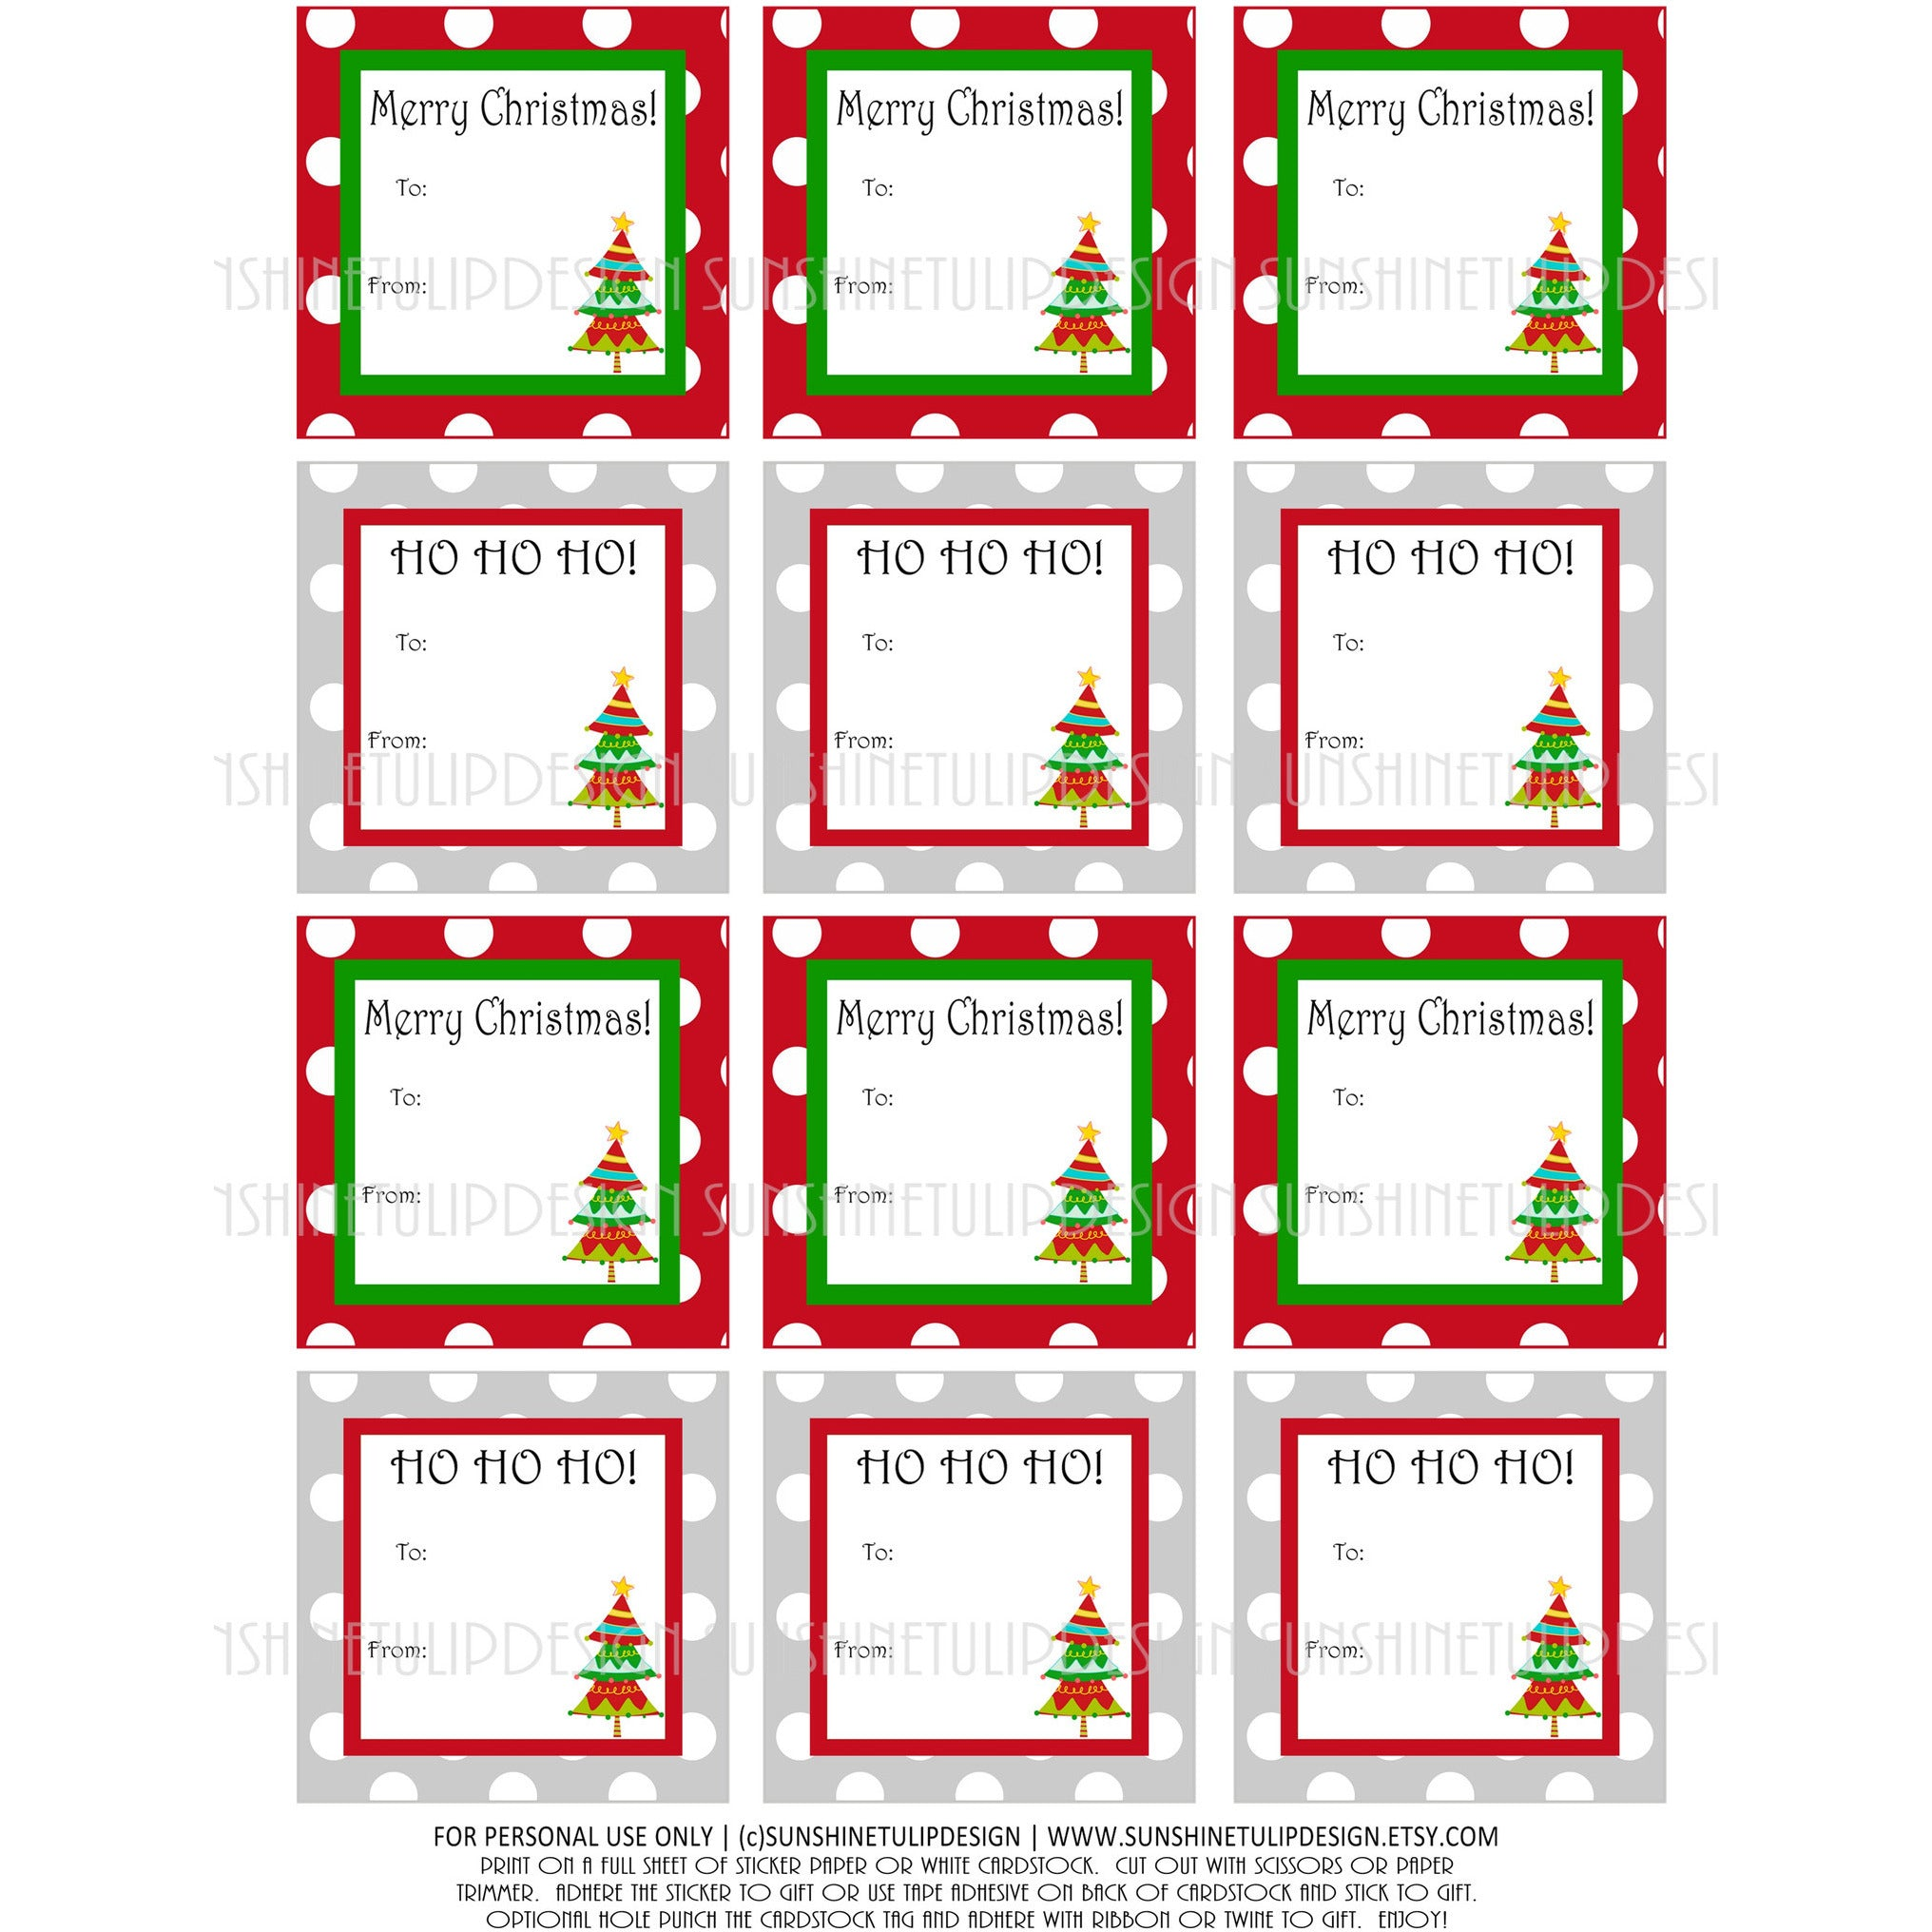 graphic about Christmas Labels Printable called Printable Xmas Present Tags, Xmas Labels, Pink and Environmentally friendly Xmas Tags